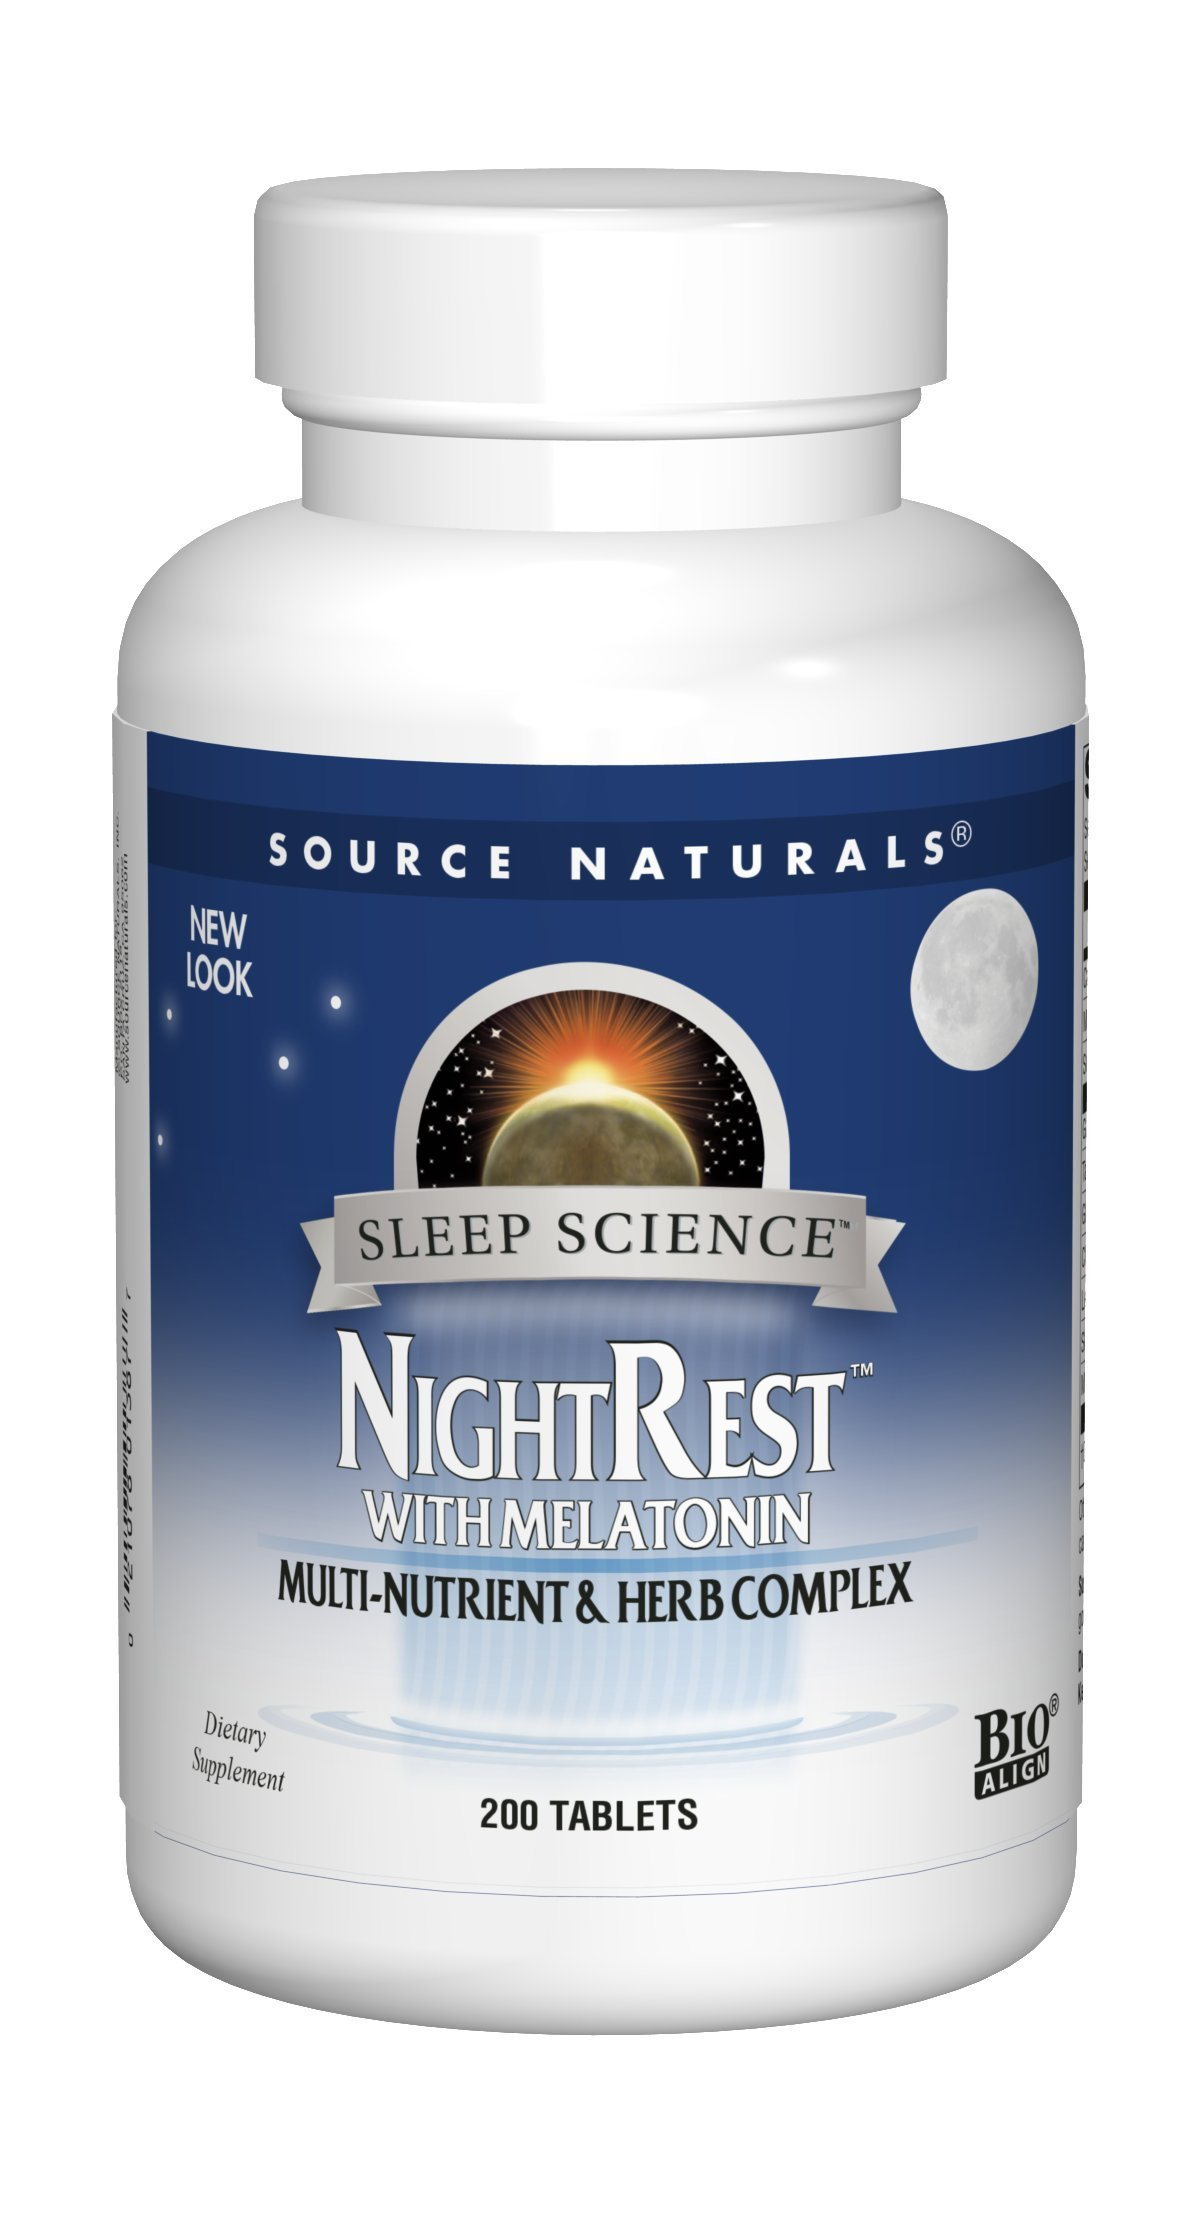 Source Naturals Sleep Science NightRest Multi-Nutrient & Herb Complex With Melatonin, GABA,